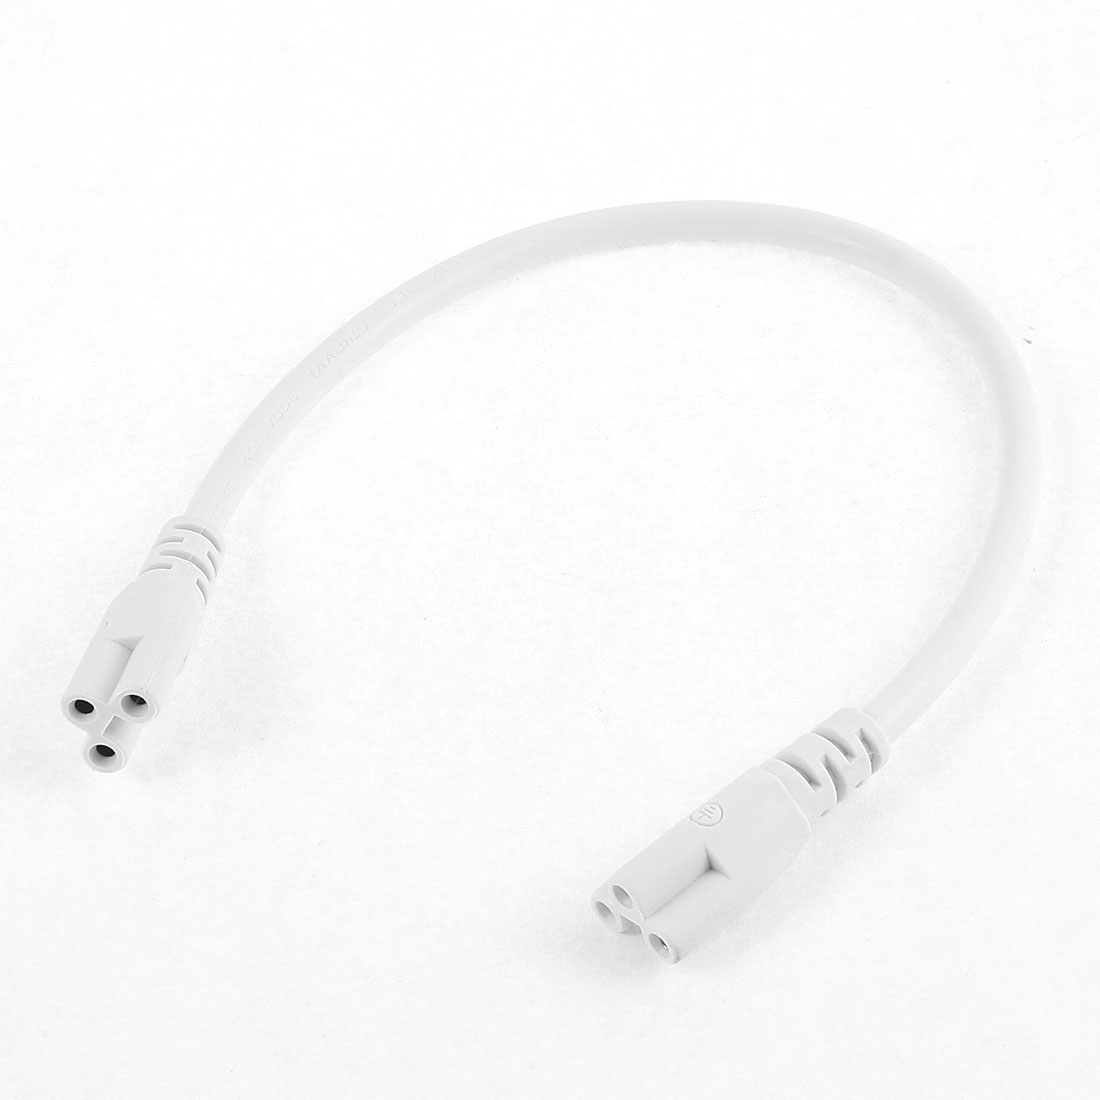 AC 250V 2.5A T5 Fluorescent Led Light Power Connector Cable Plug Wire White 30cm